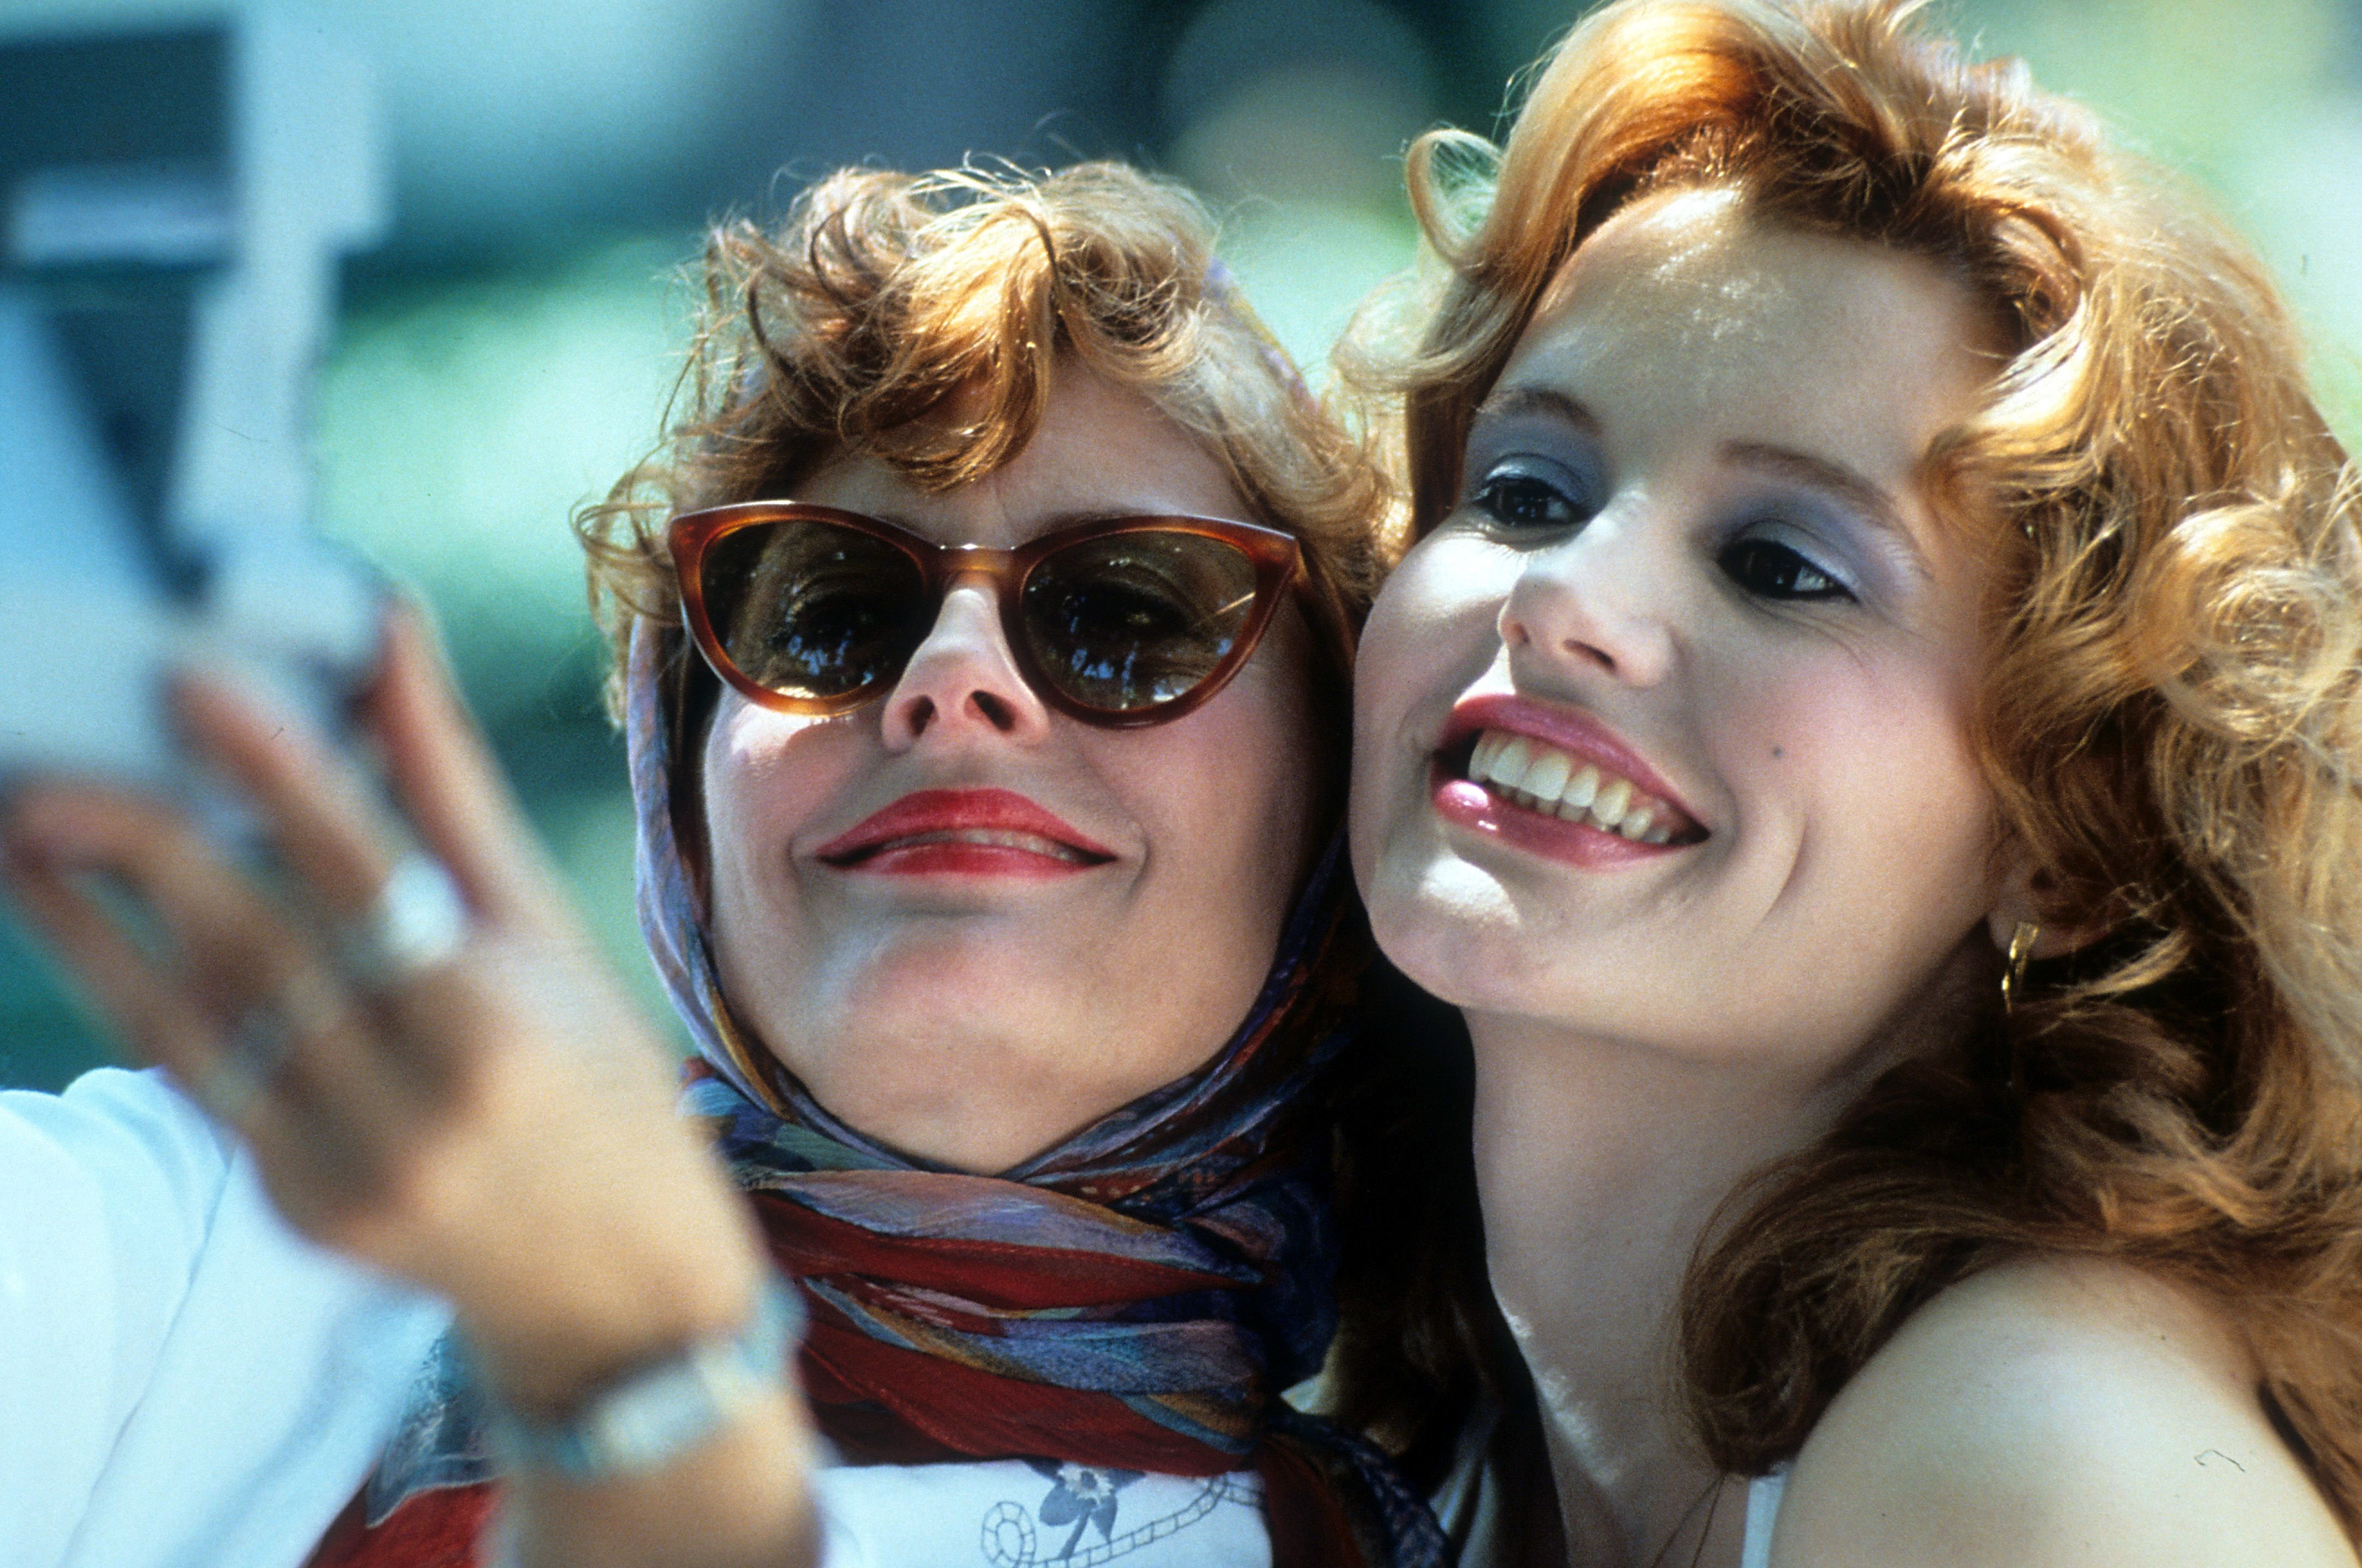 """Susan Sarandon and Geena Davis in a scene from the film """"Thelma & Louise,"""" 1991 